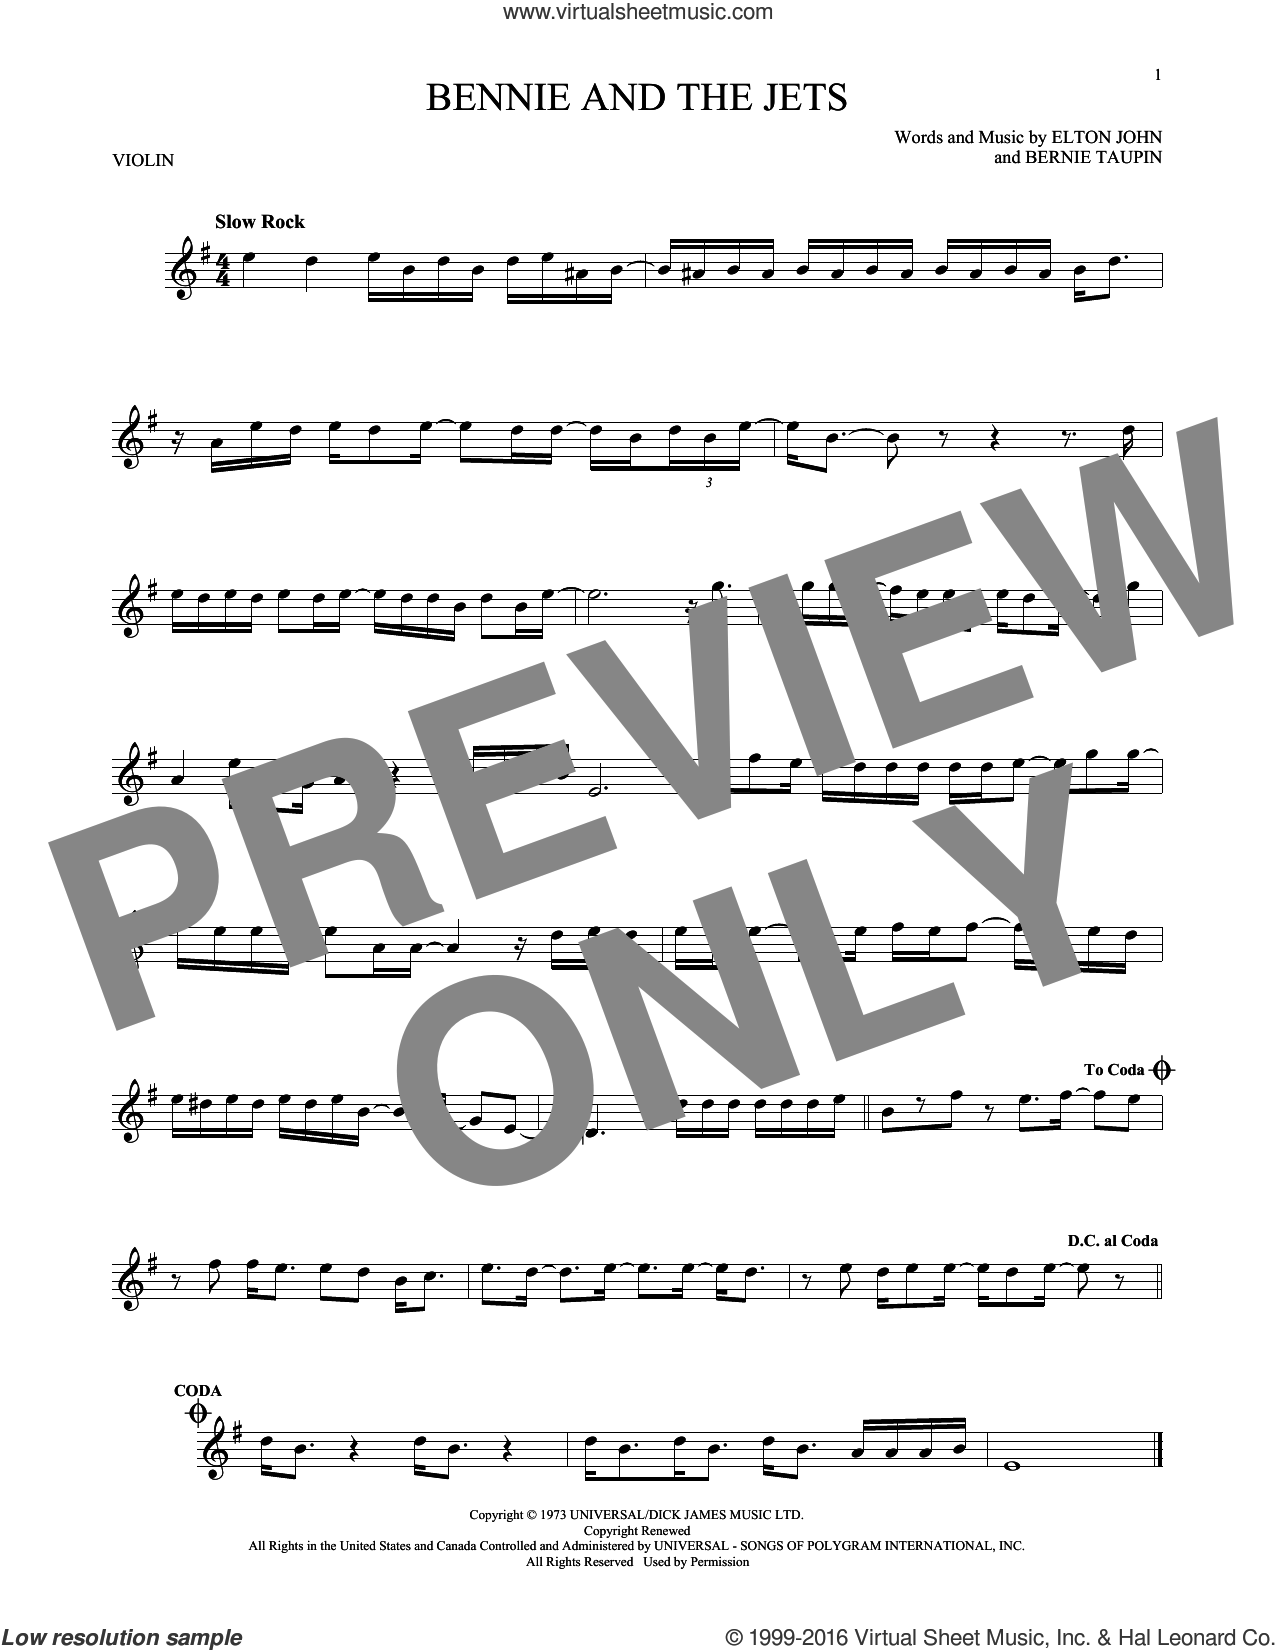 Bennie And The Jets sheet music for violin solo by Elton John and Bernie Taupin, intermediate skill level